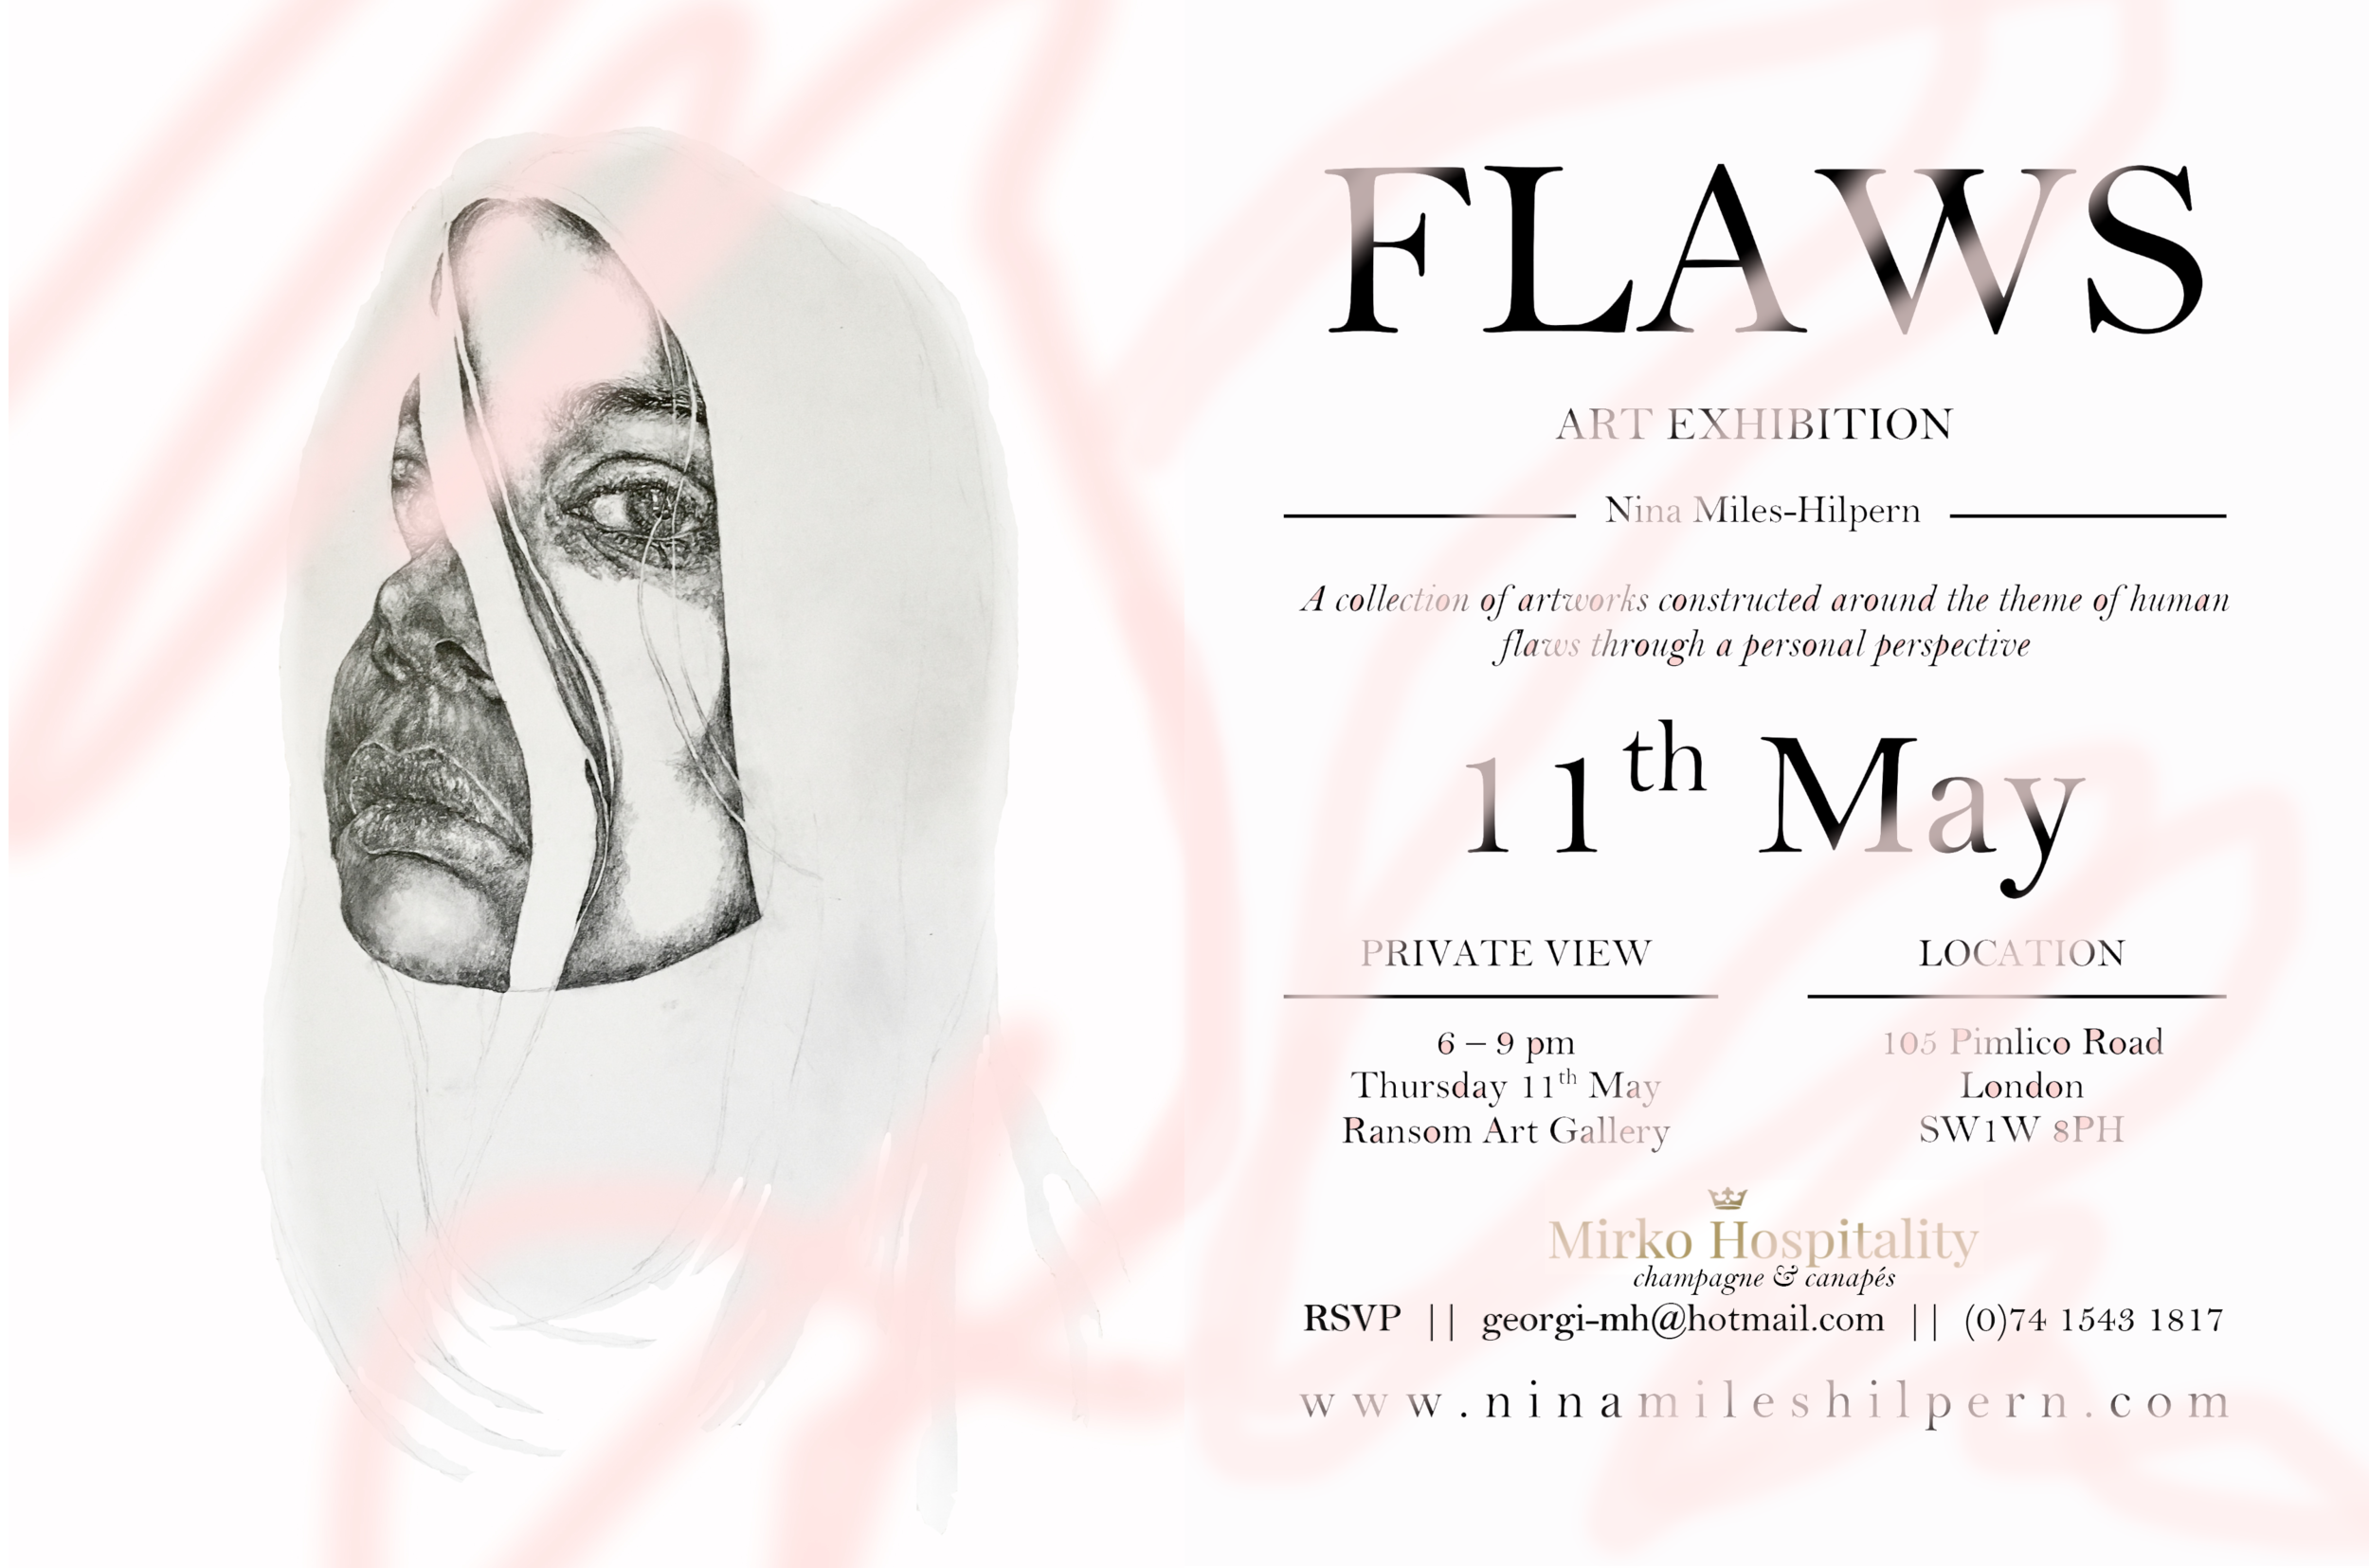 FLAWS Exhibition - 11th May - Invitation.jpg